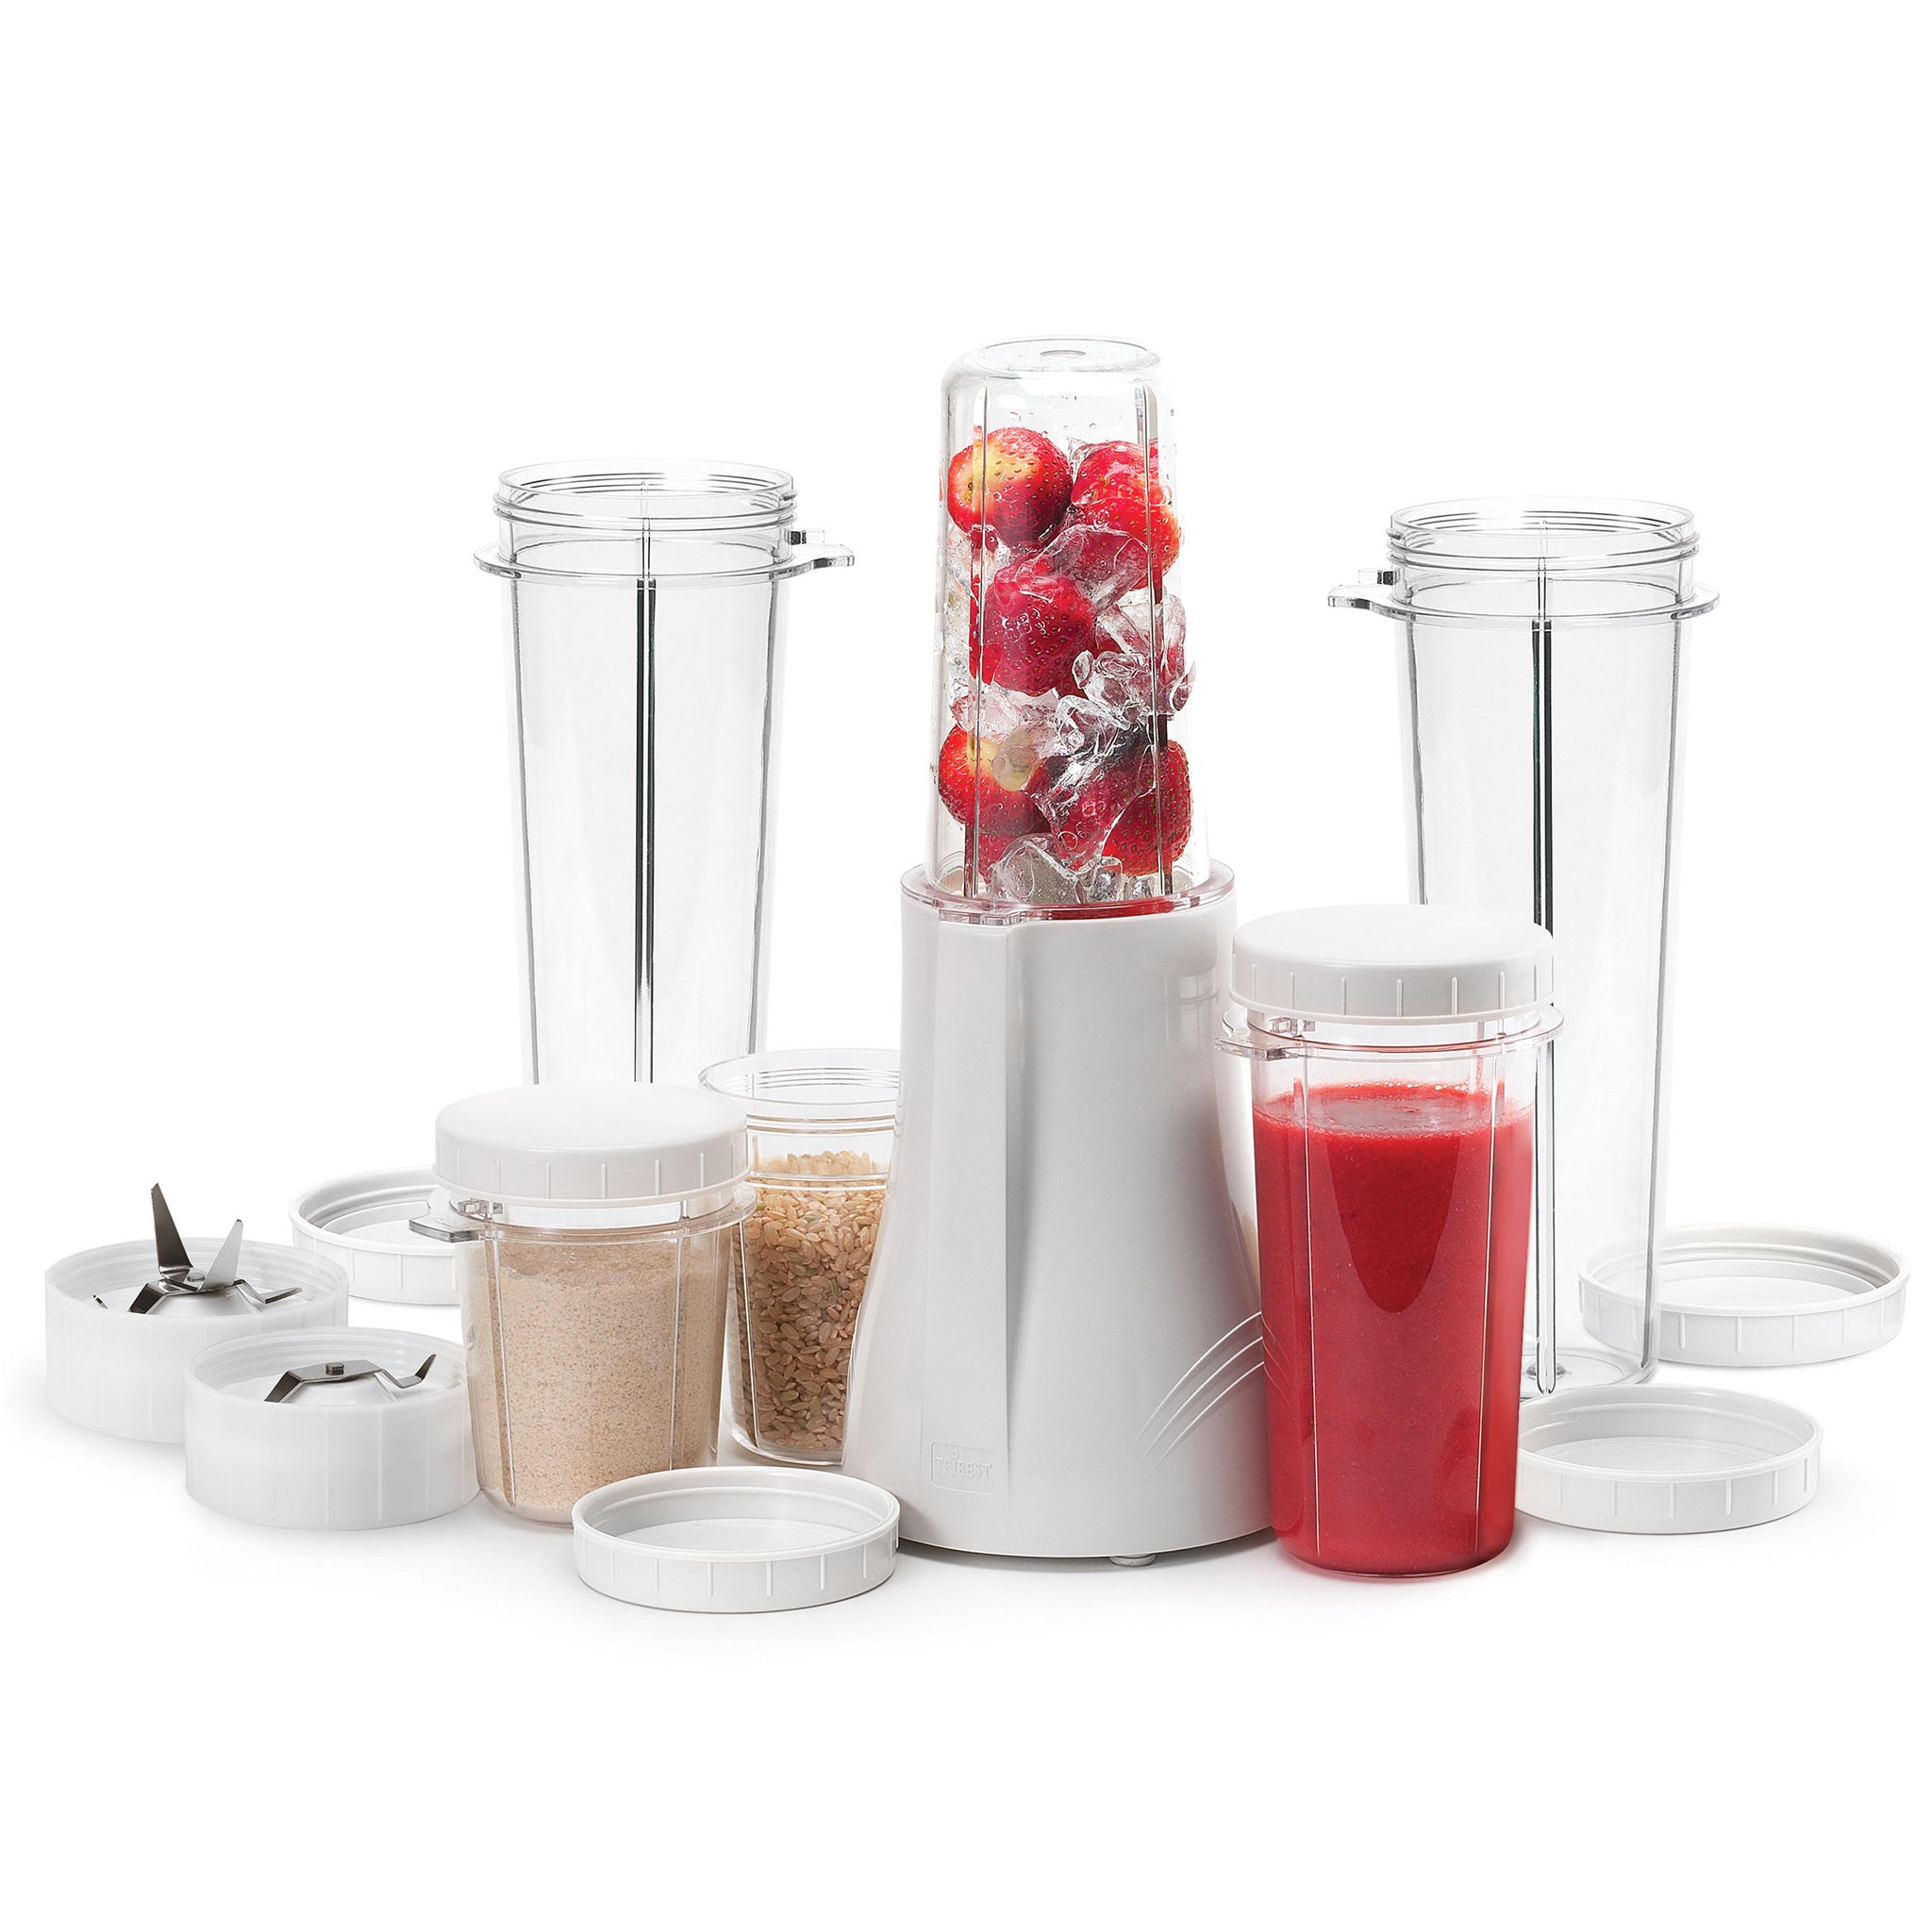 Personal Blender® Original Single-Serving Blender (15-Piece Complete Blend and Grind Set) PB-250XL-A - Tribest